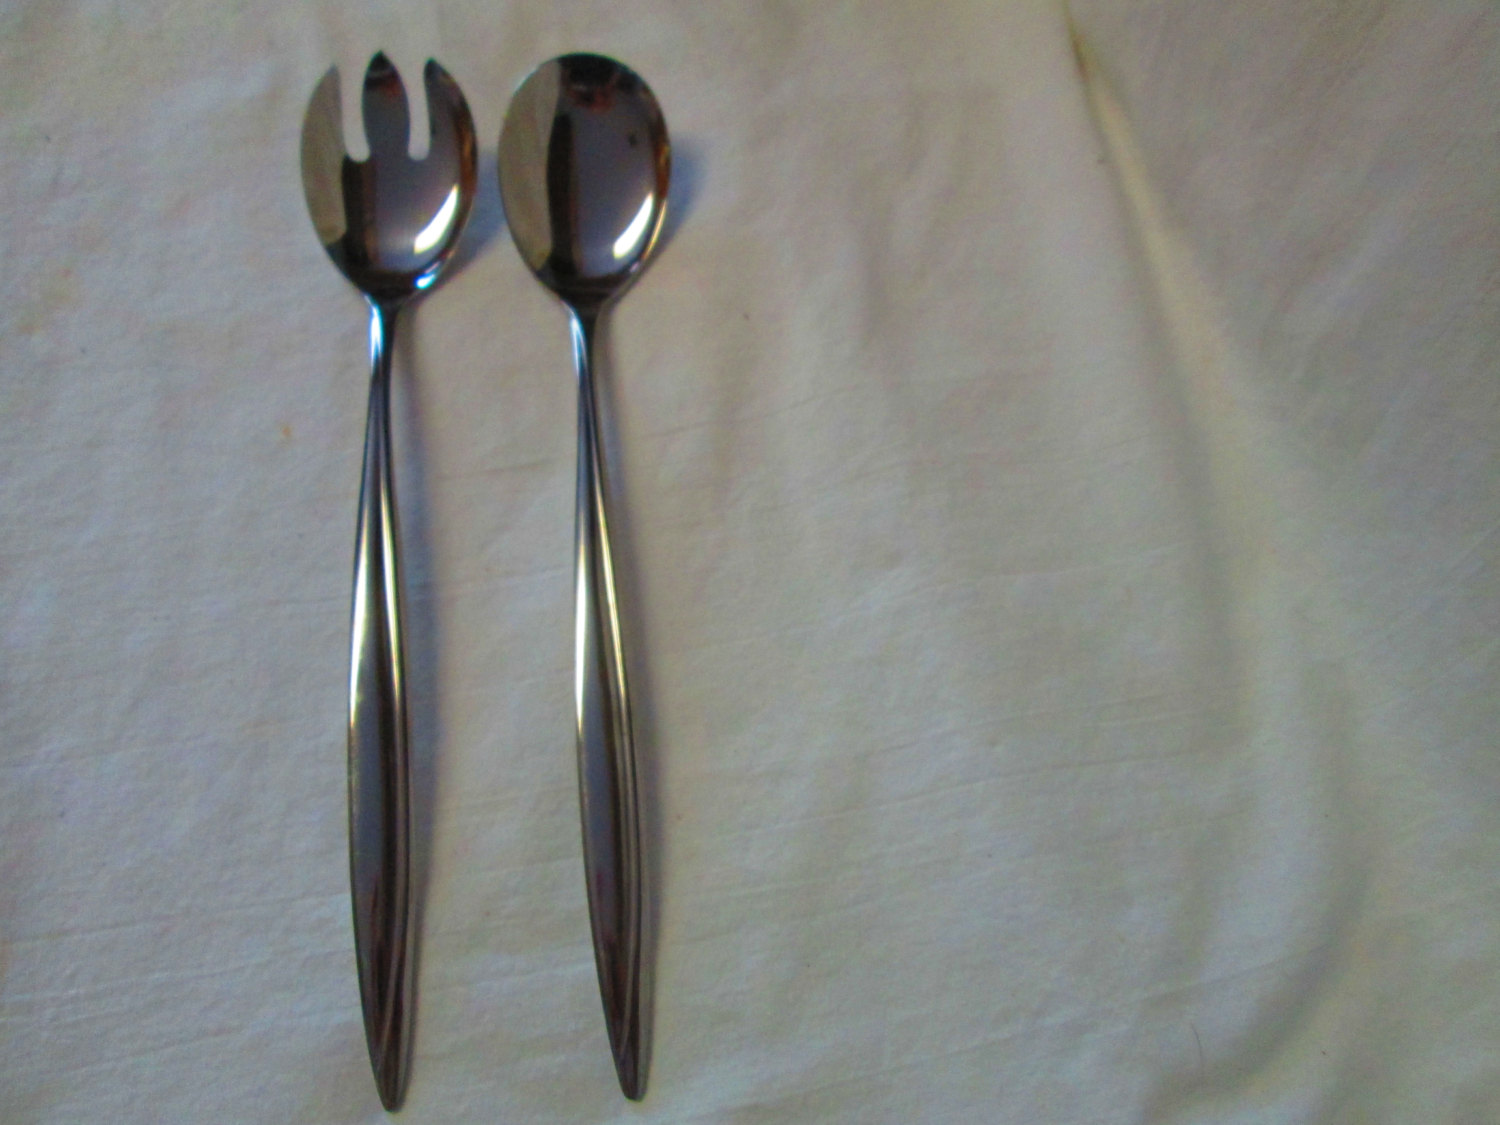 Dorze Stainless Mid Century Modern Japan Salad Set by Hull Harcourt pattern Very clean lines Great condition